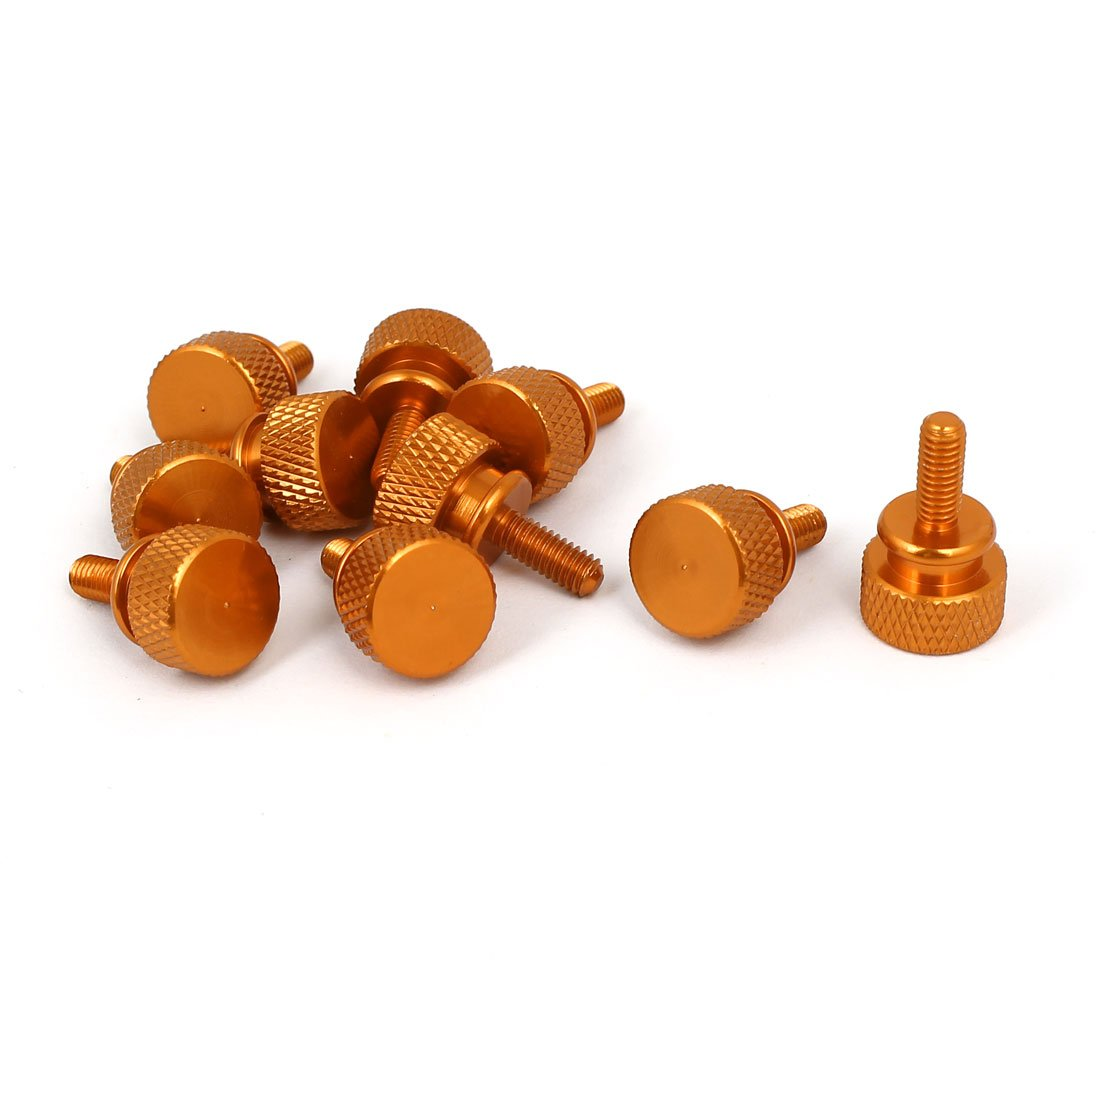 uxcell Computer PC Case M4x10mm Shoulder Type Knurled Thumb Screw Orange 10pcs